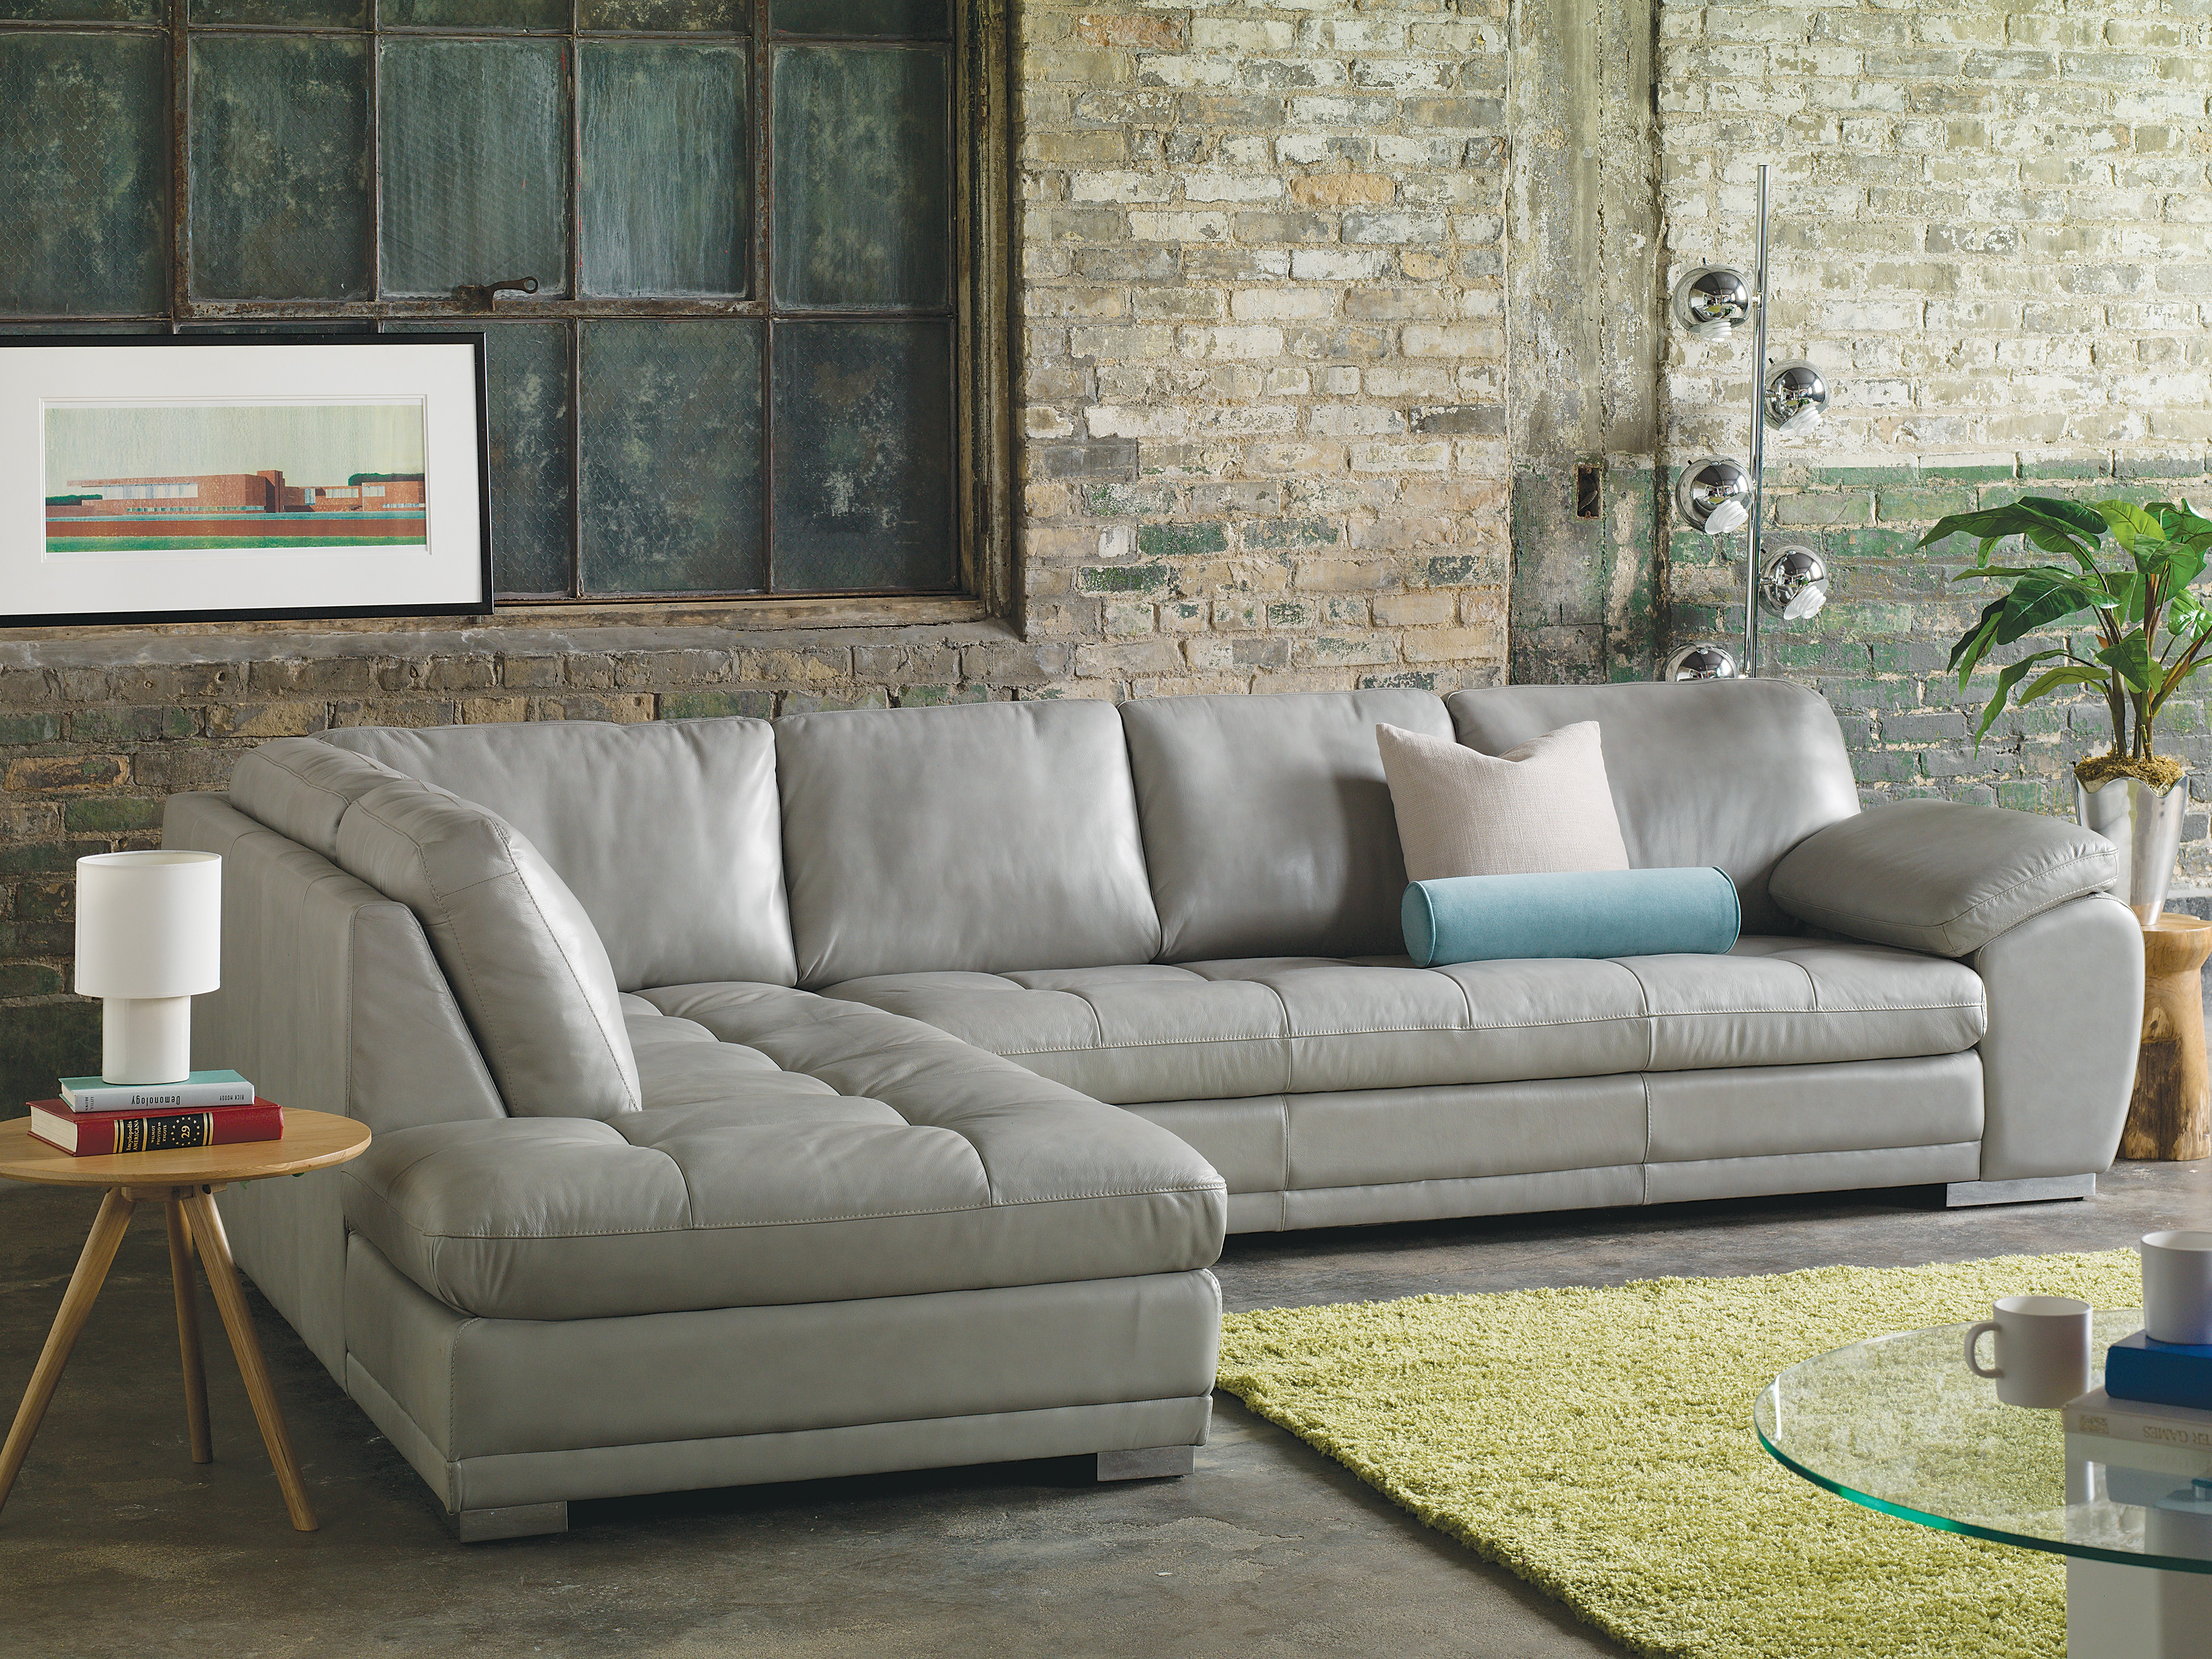 Astounding Miami 77319 70319 Sectional 350 Fabrics And Sofas And Beatyapartments Chair Design Images Beatyapartmentscom